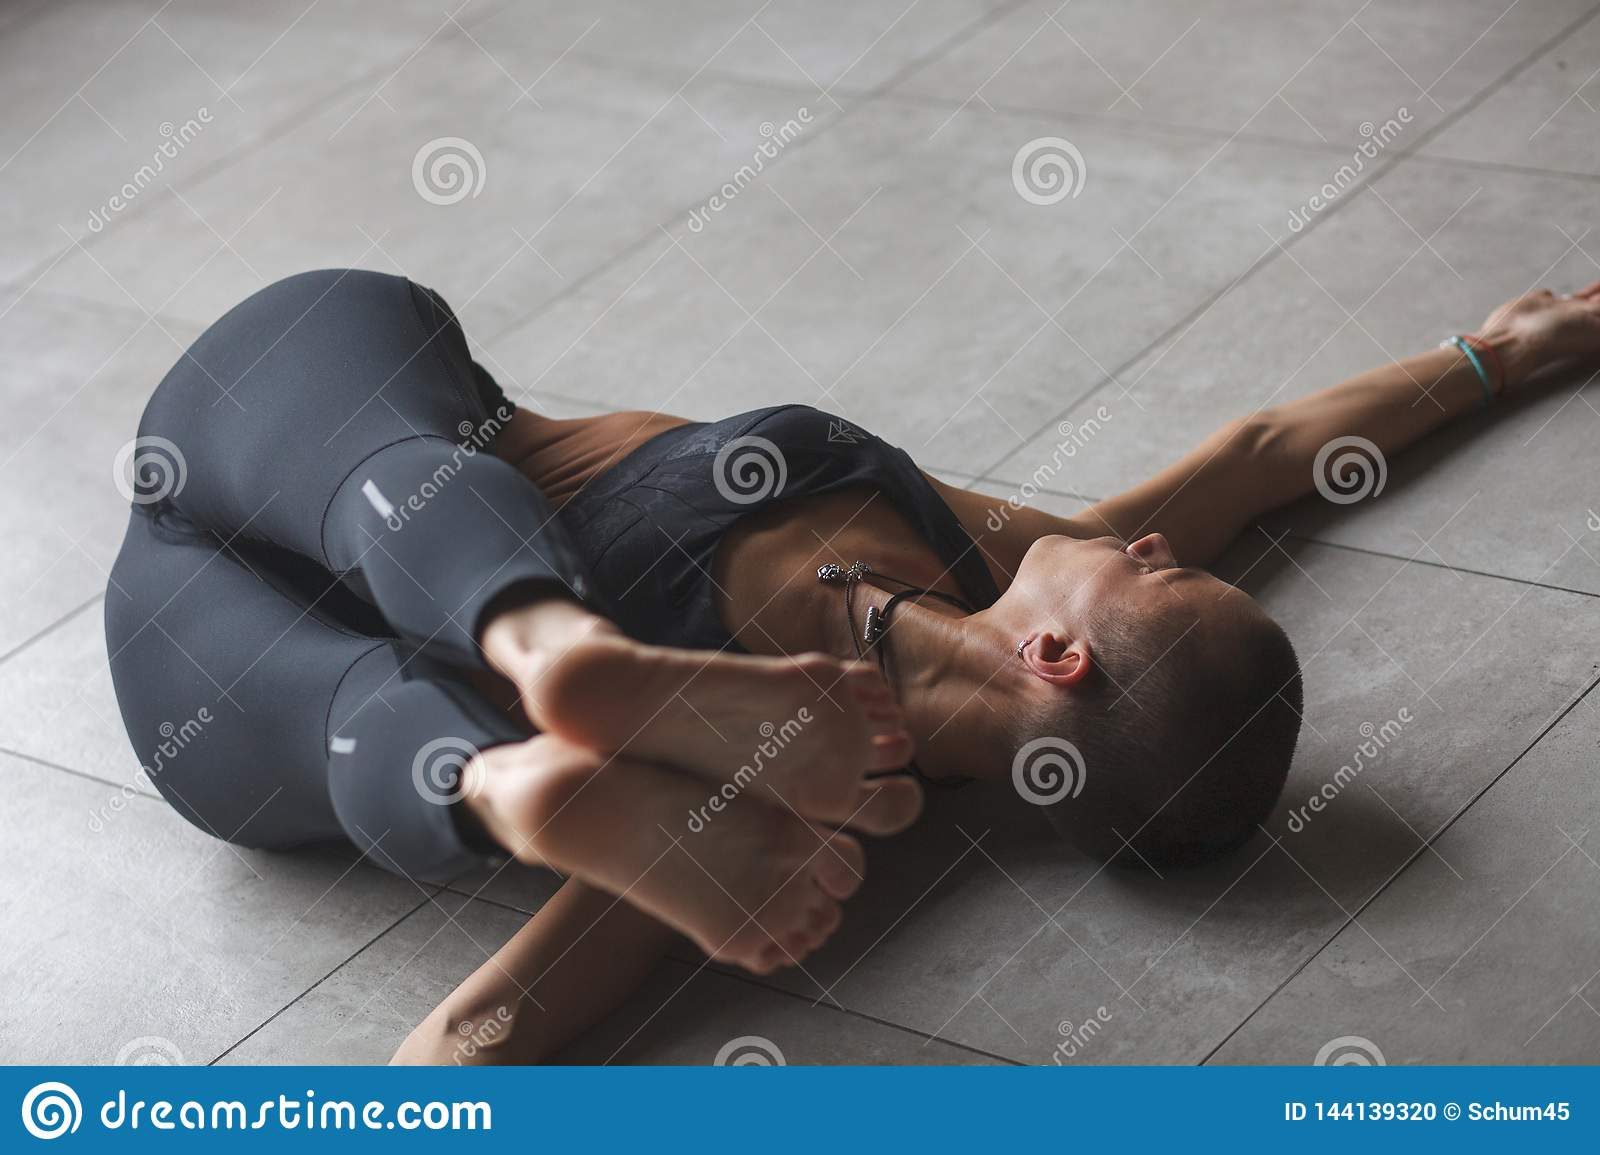 Female in sportswear doing twist and stretch exercise